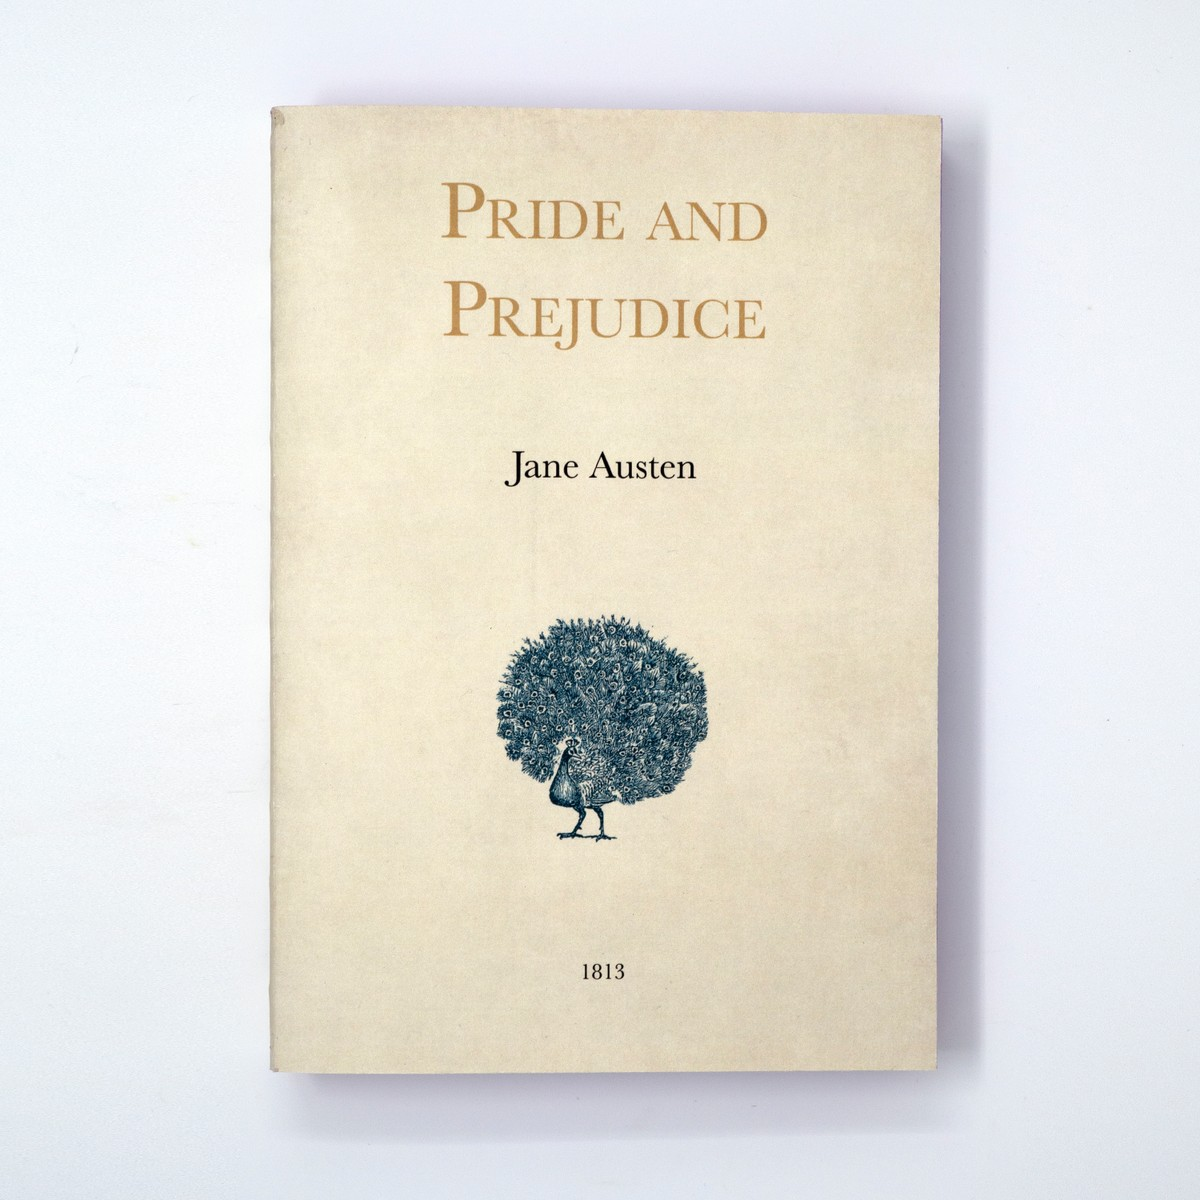 Photo of Pride and Prejudice Notebook